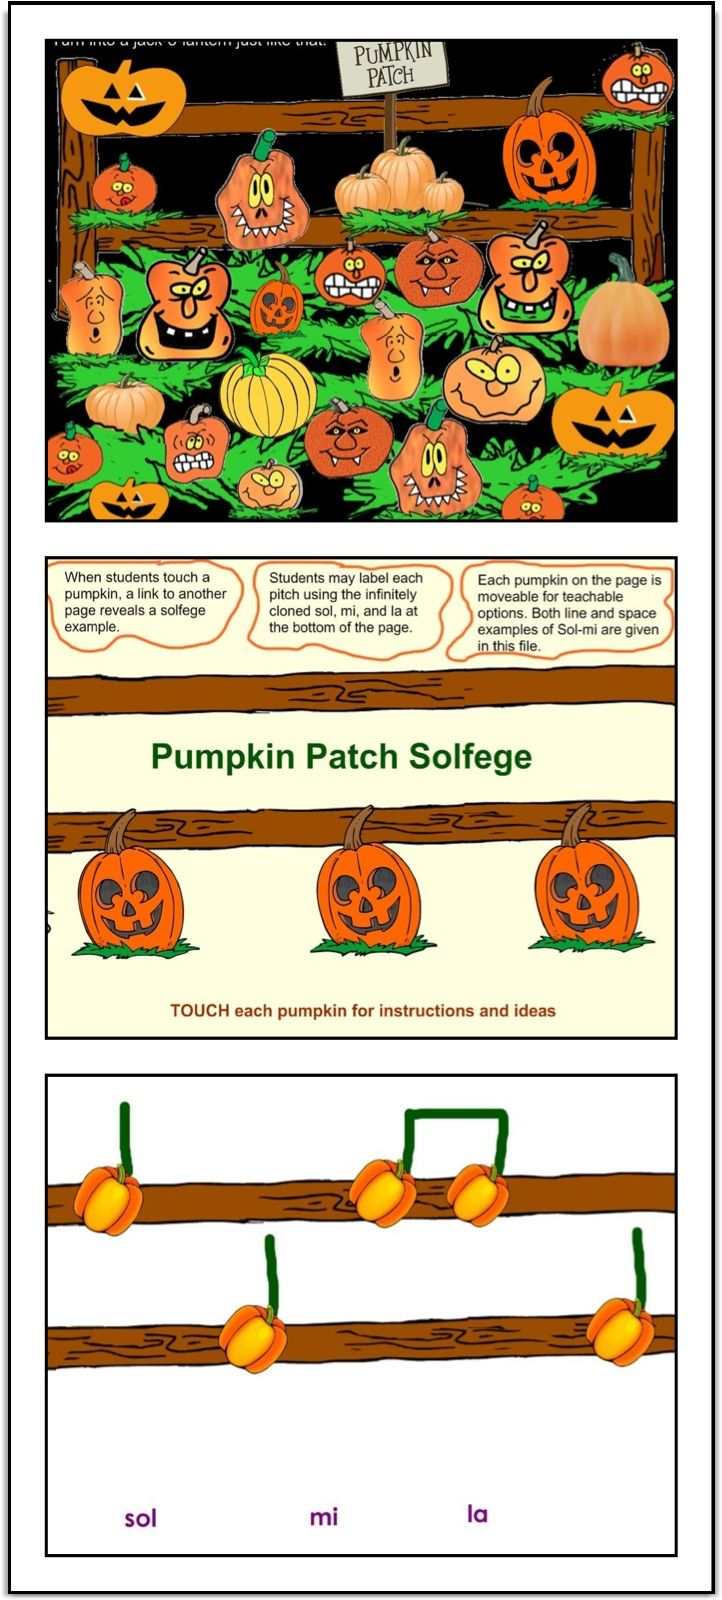 Applejack Pumpkin Patch Activities & Attractions